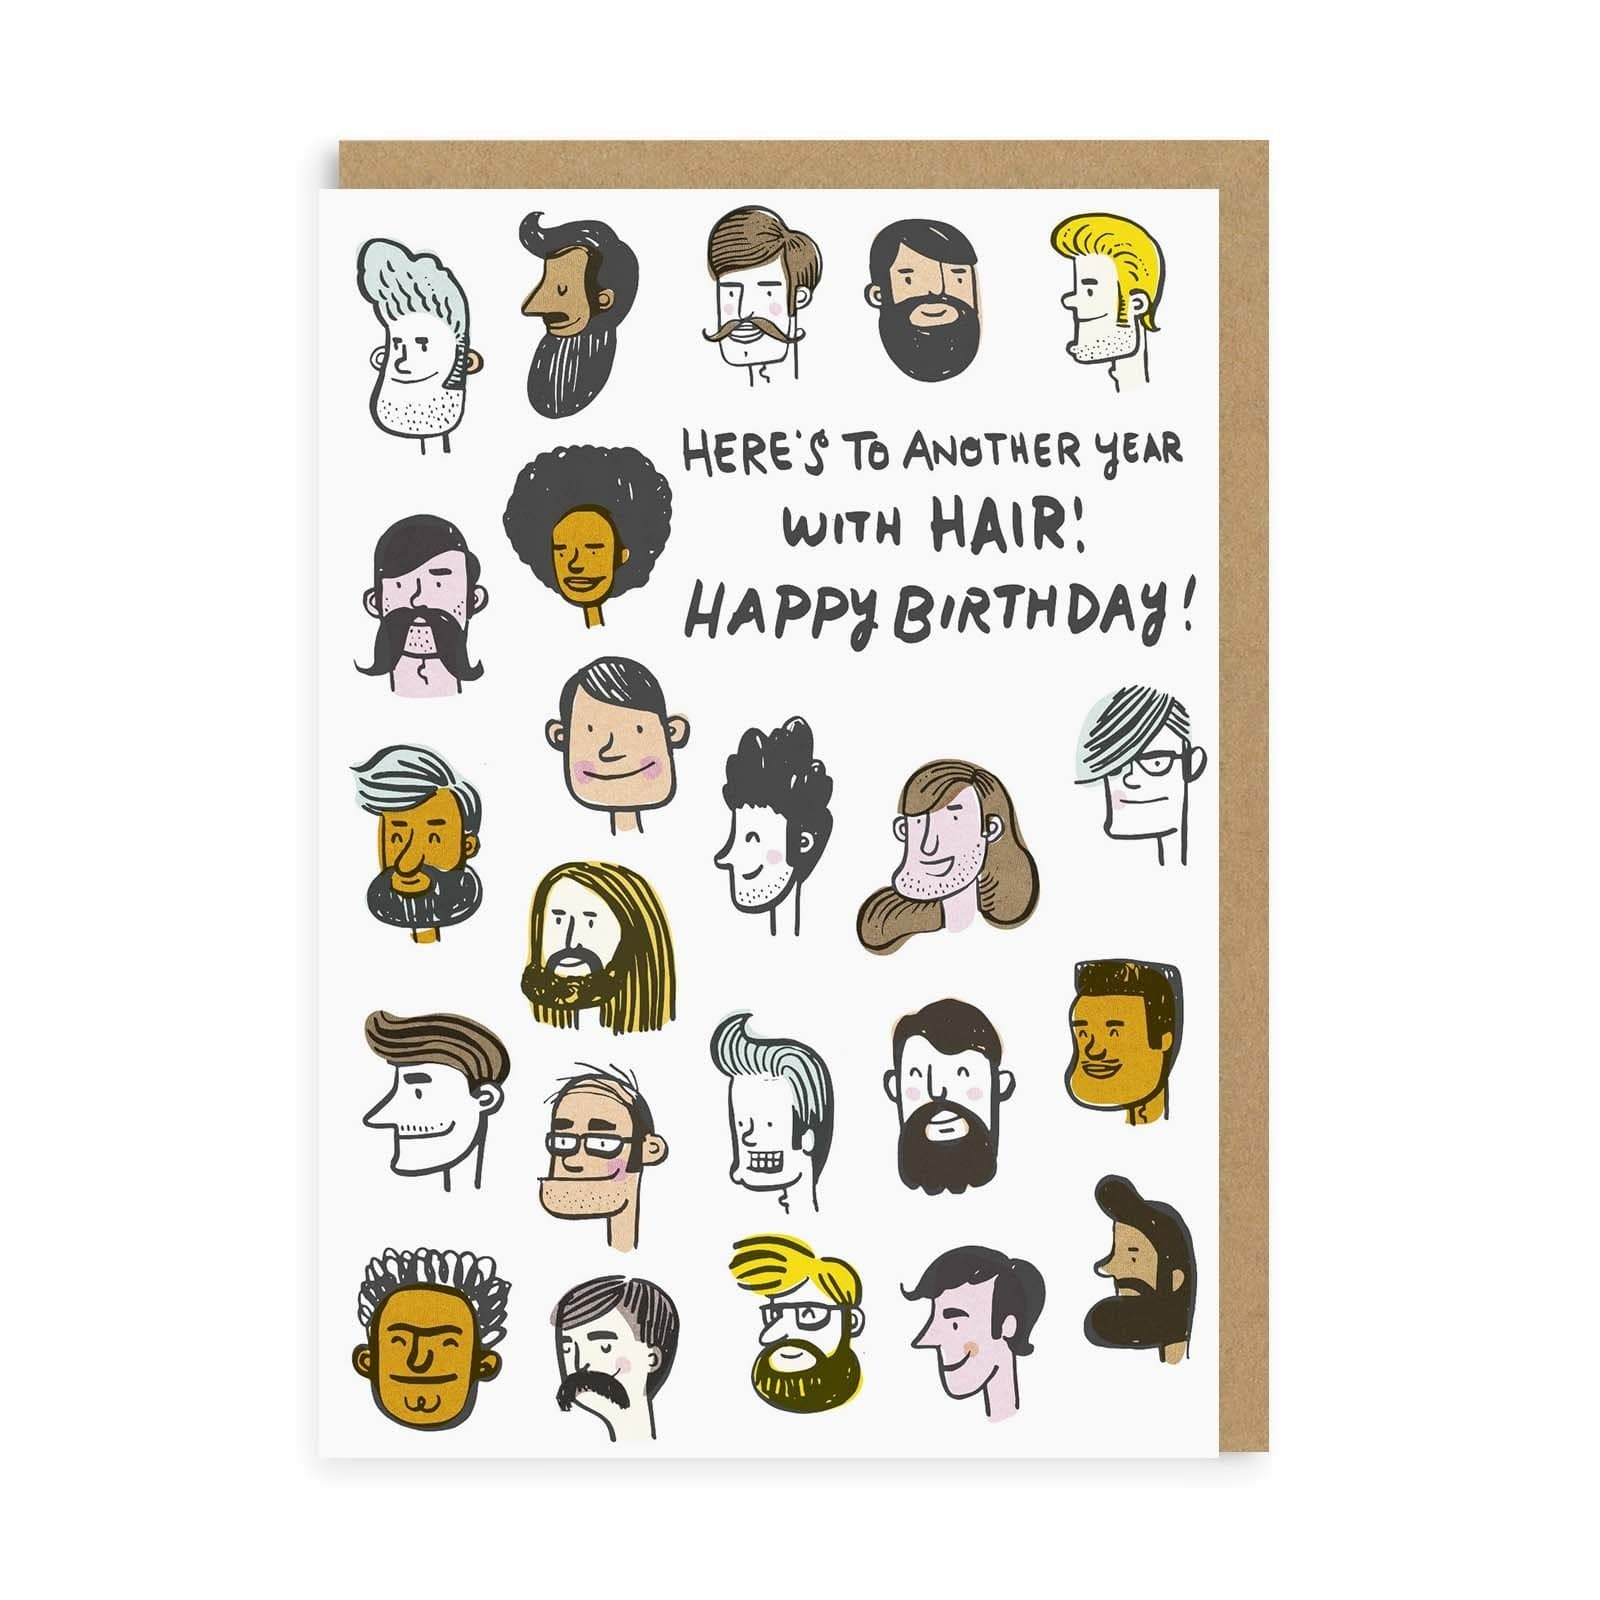 Another Year With Hair Greeting Card